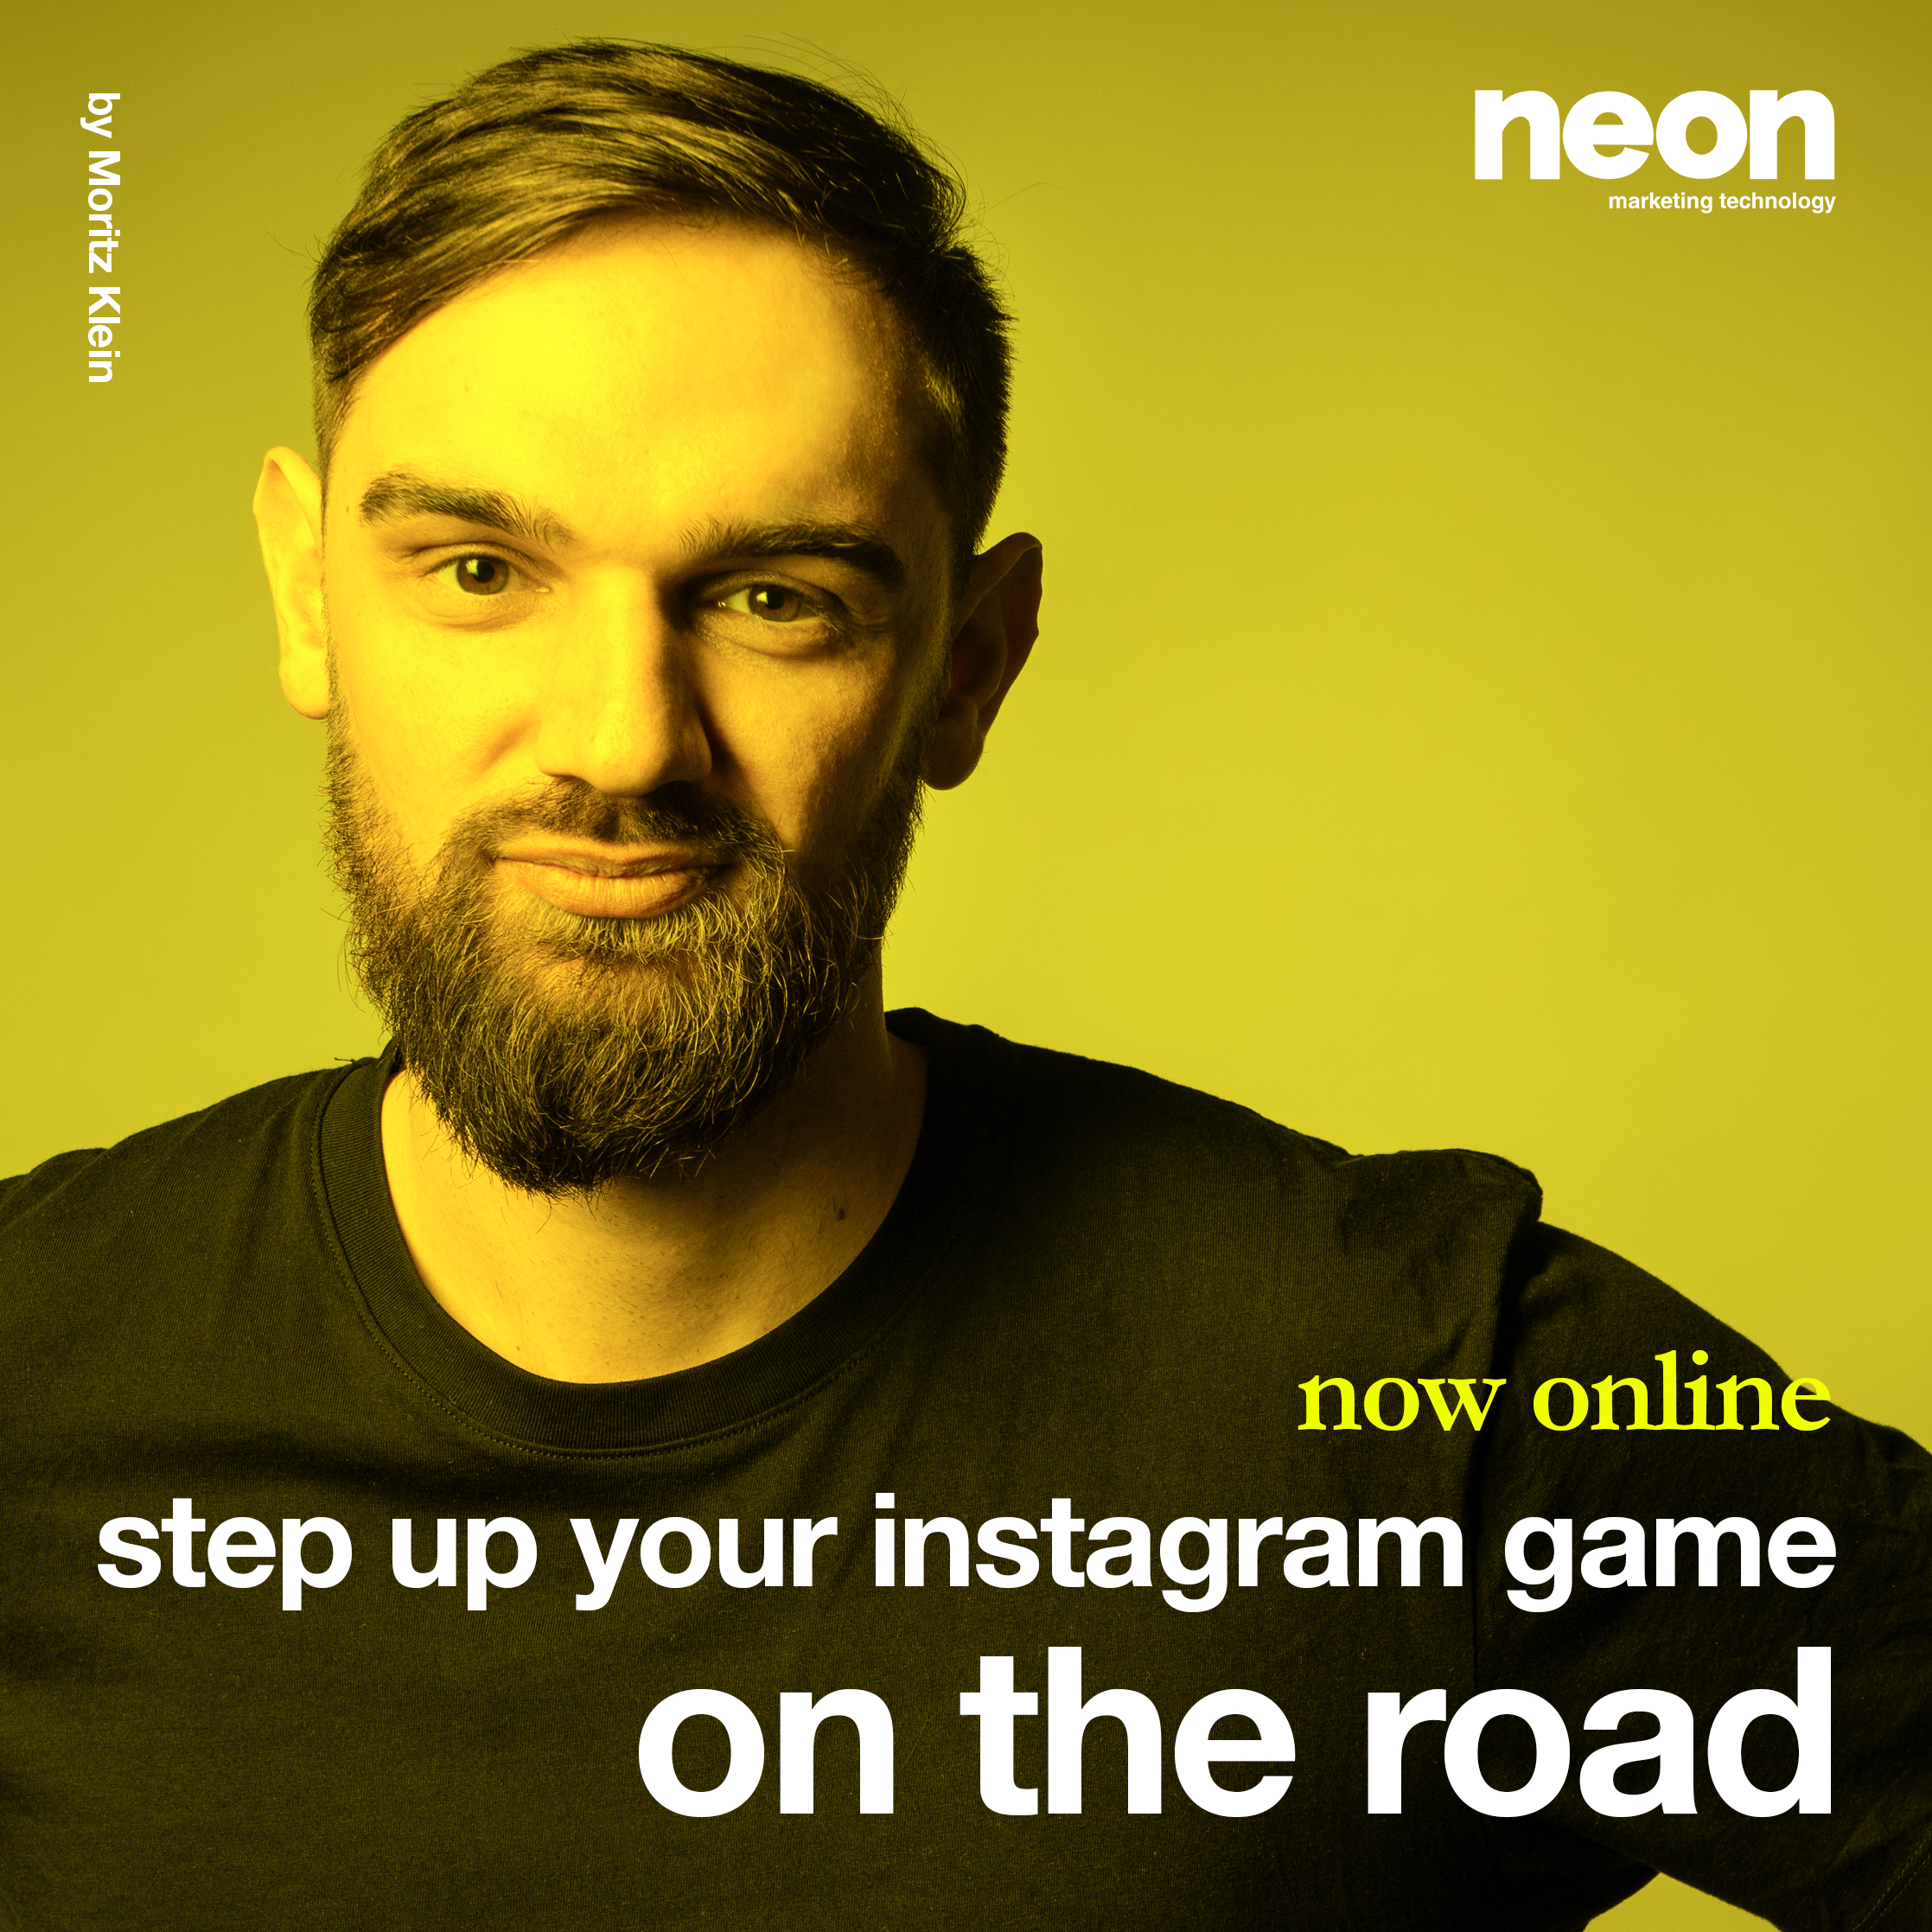 Step up your Instagram on the road